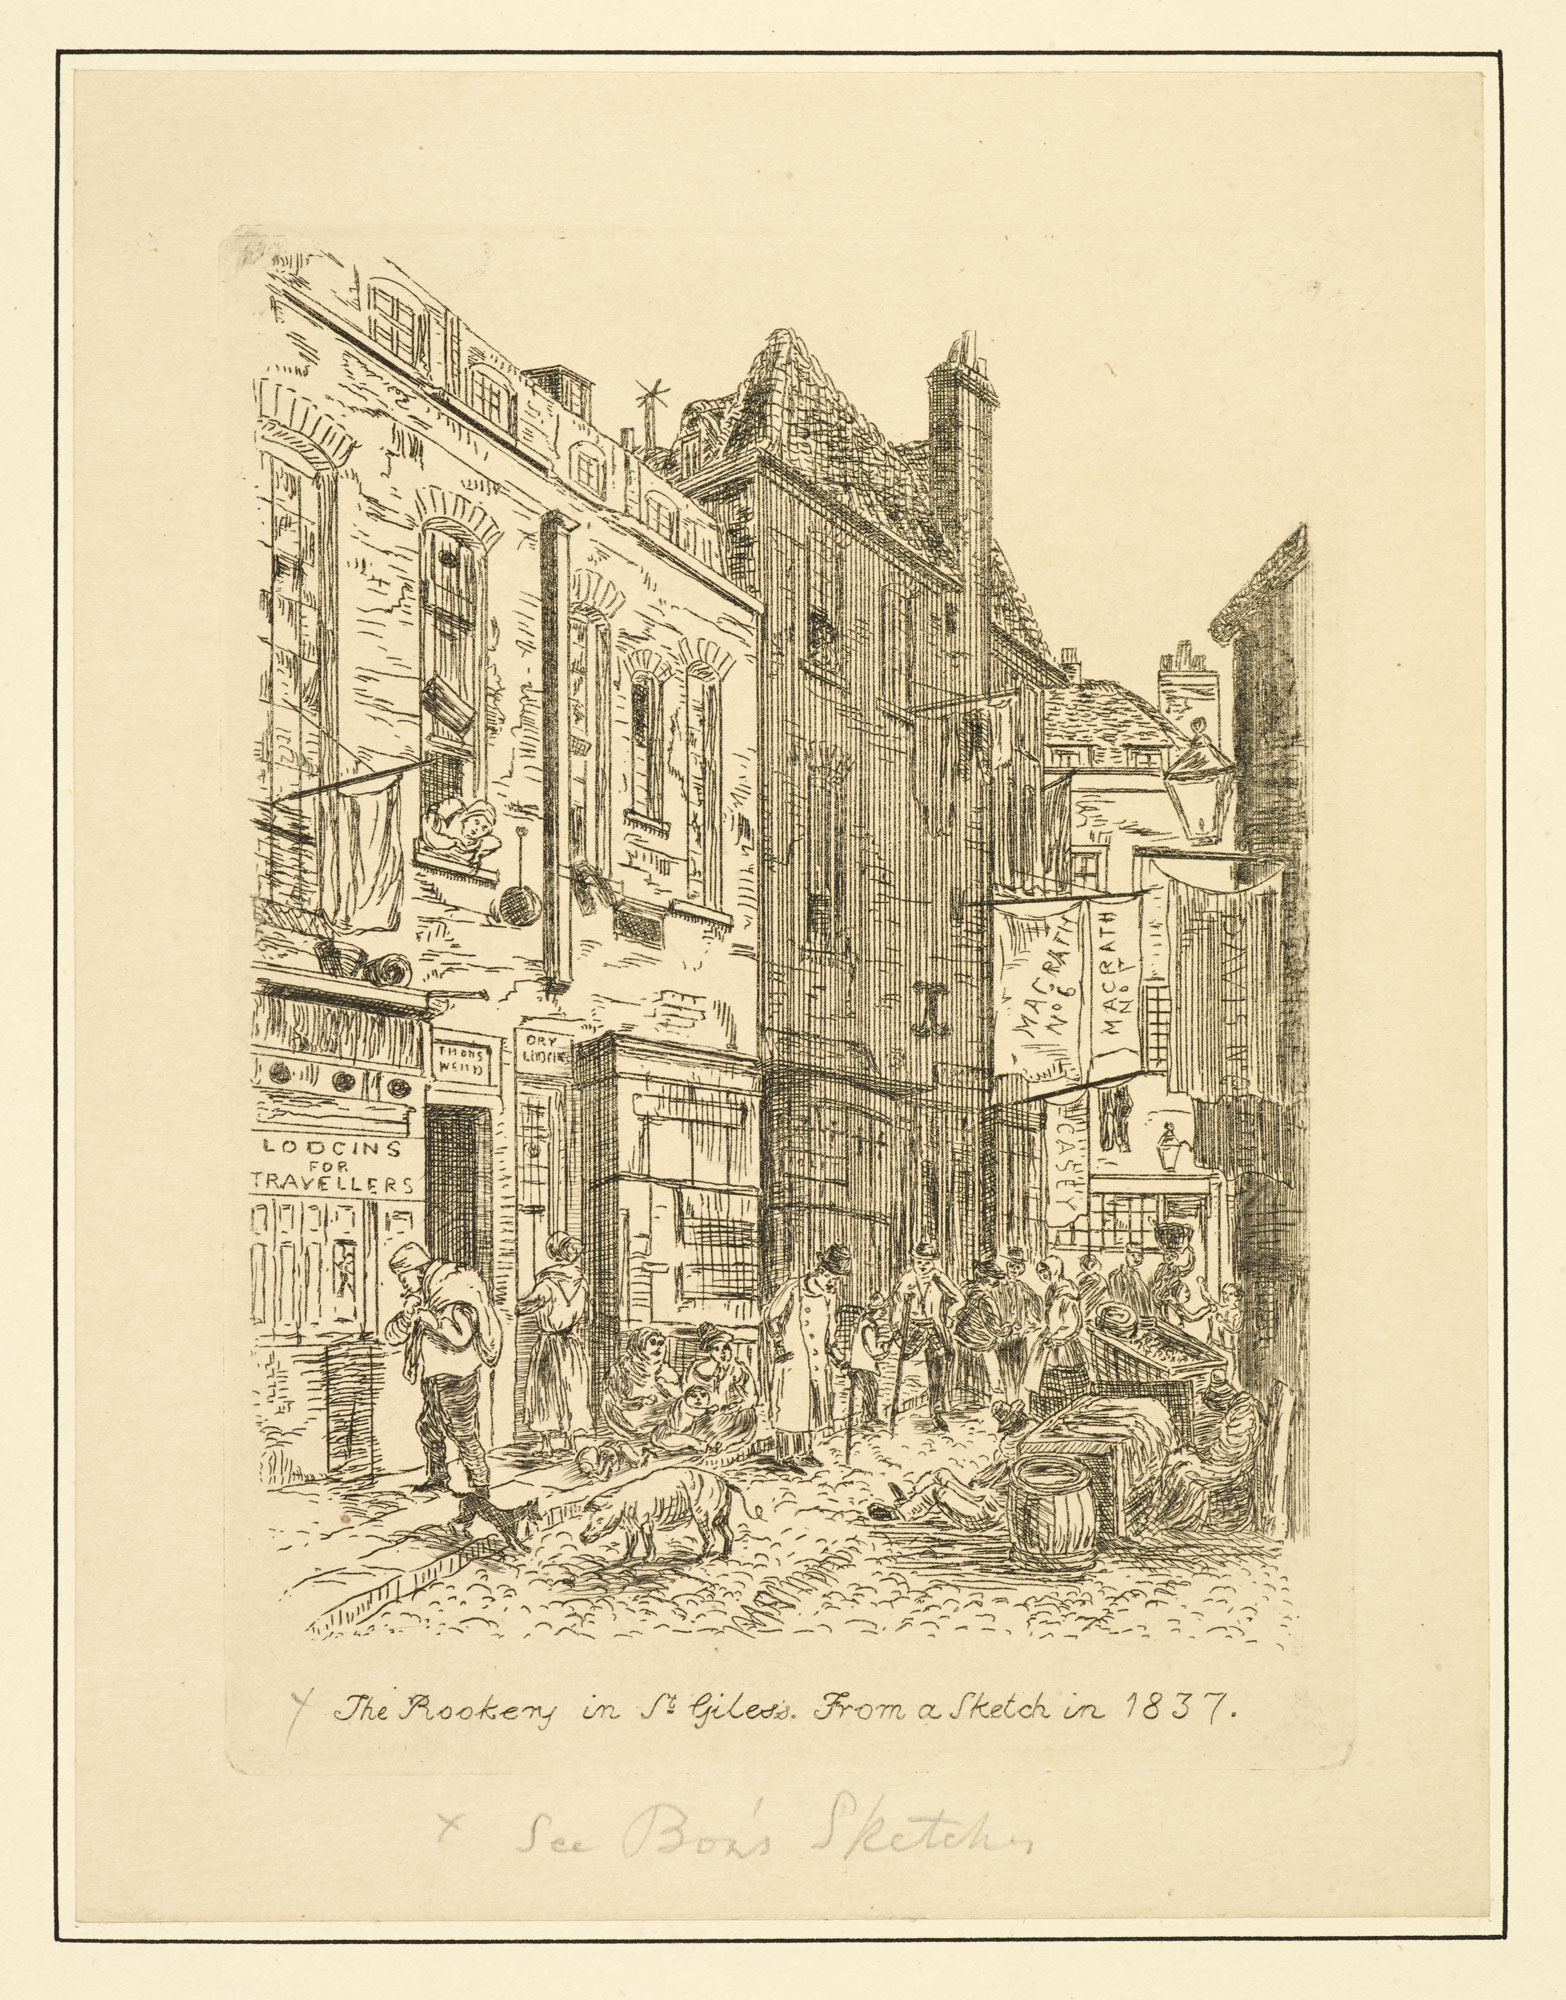 Printed sketch of The Rookery in St. Giles, 1817 [page: 42]